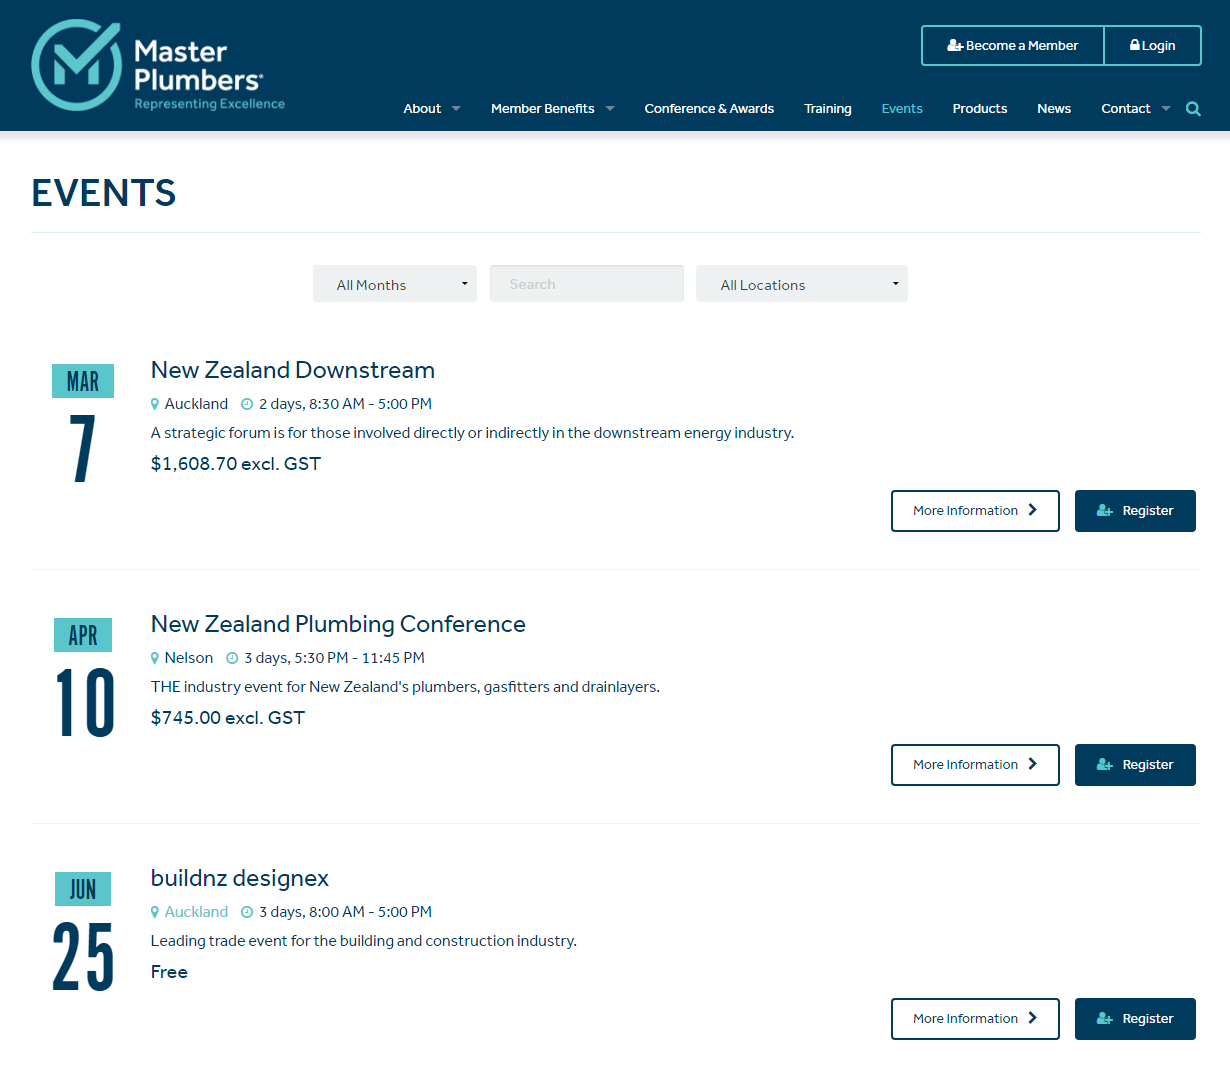 Keep it simple! Promote a list of upcoming events in order of upcoming date. Provide the basic information required and the ability to find out more. Master Plumber New Zealand